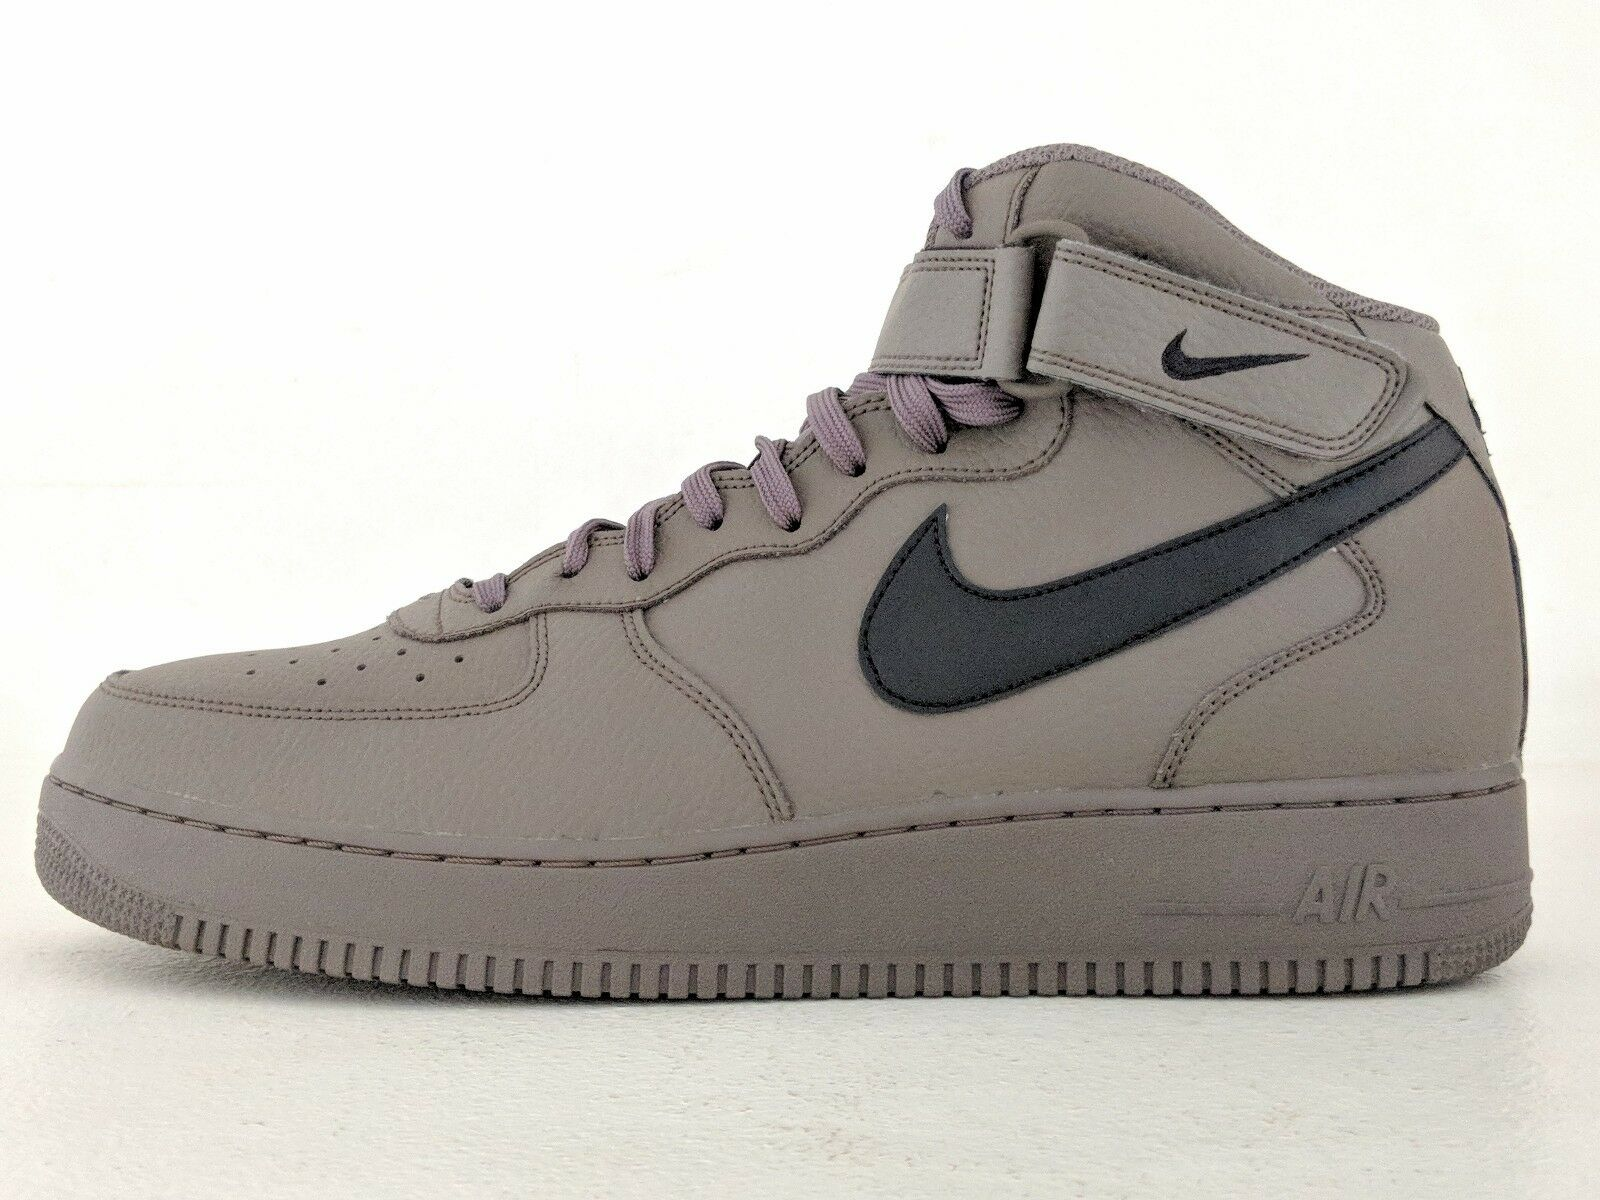 Nike Air Force 1 Mid '07 Sz 14 Ridgerock AF1 315123-205 Classic Leather Lab AF1 Ridgerock NSW 24bdb7